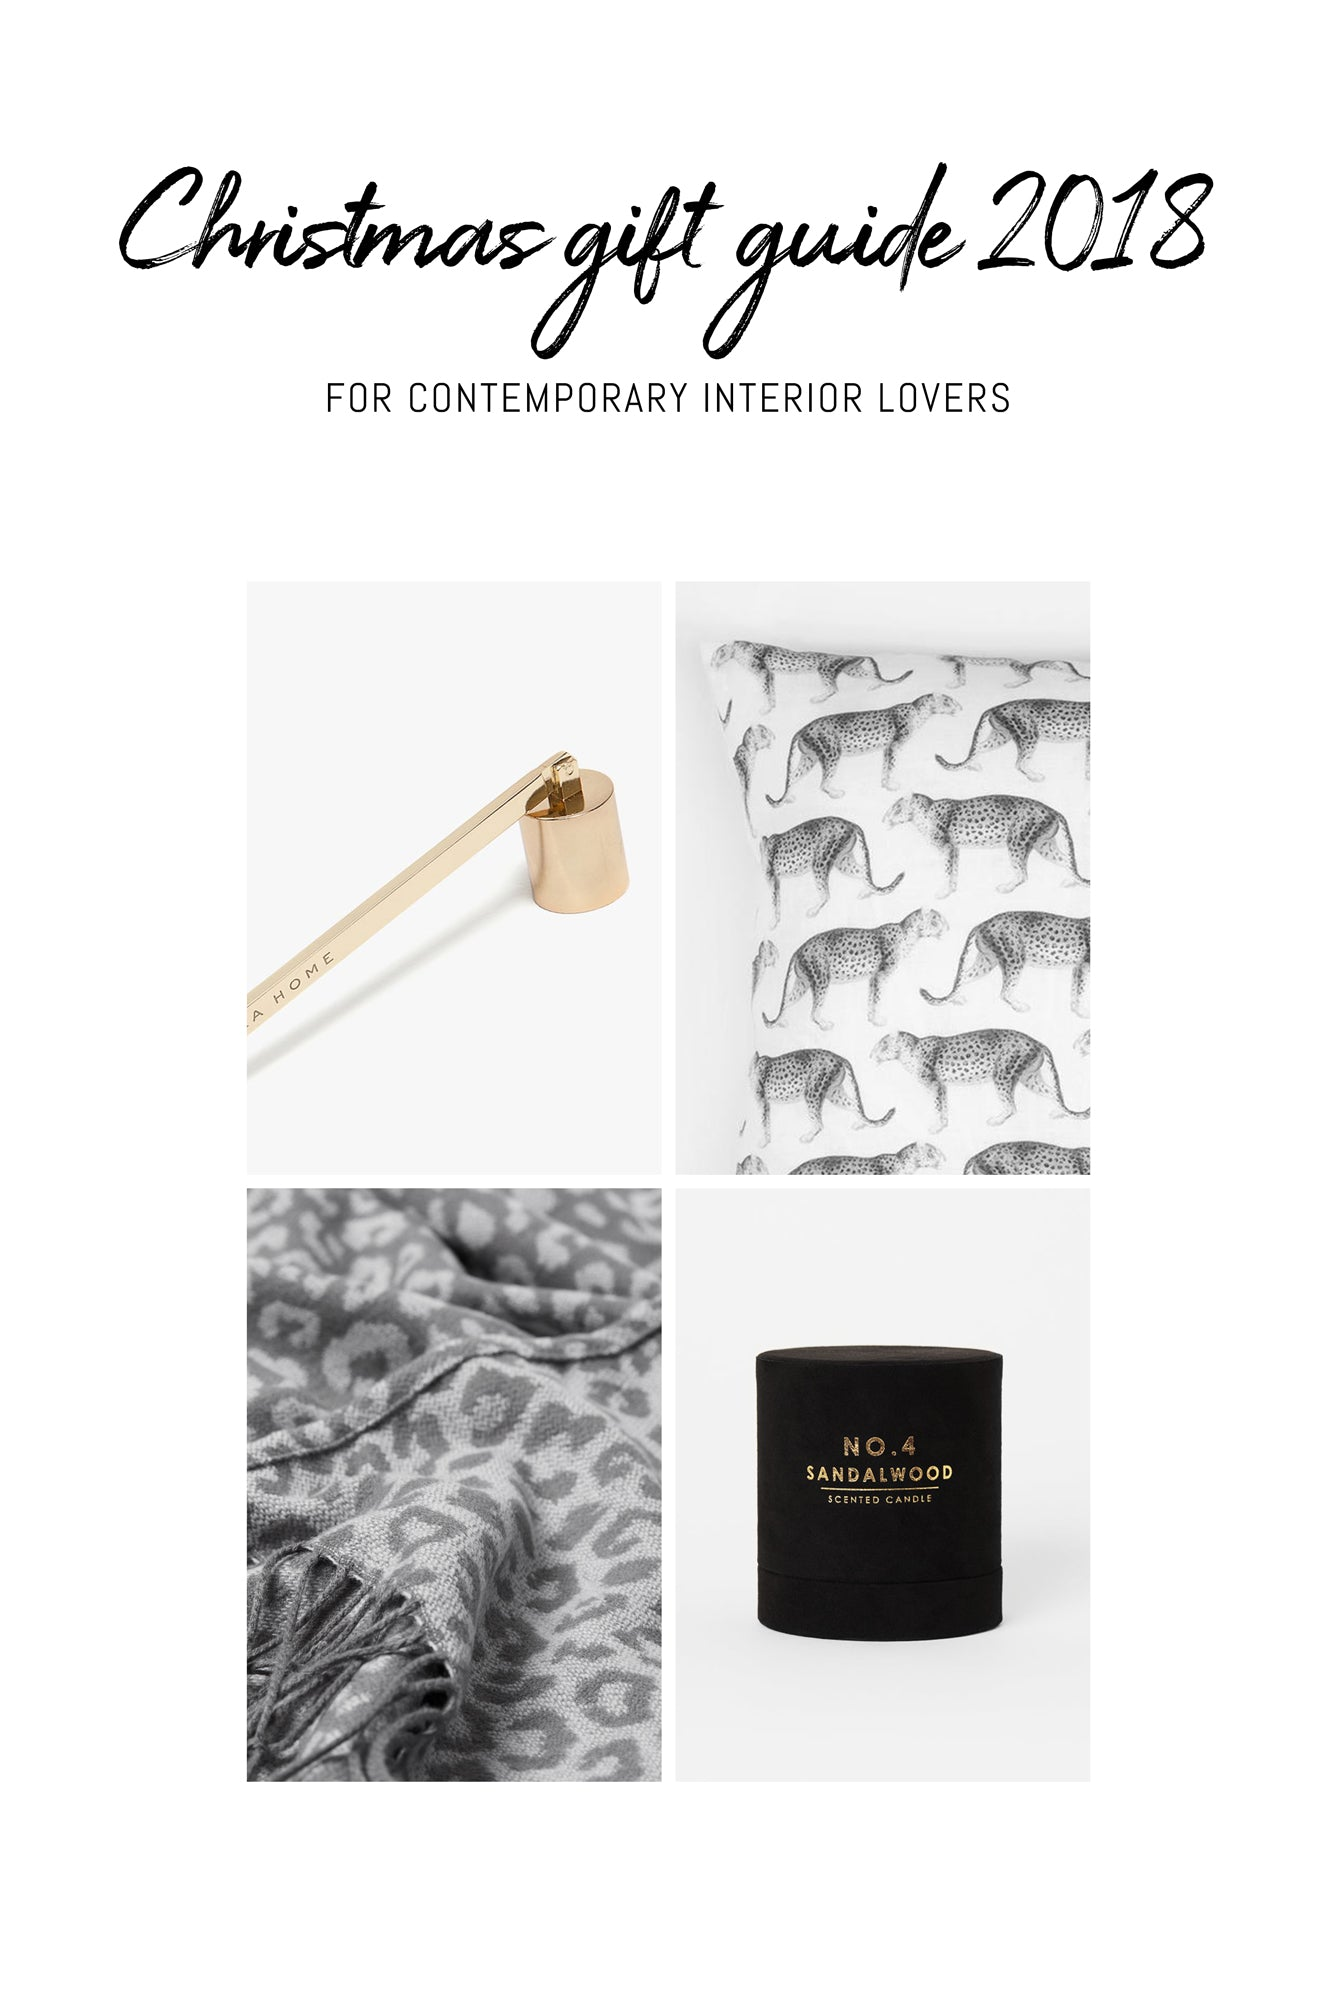 Christmas gift guide for contemporary interior lovers